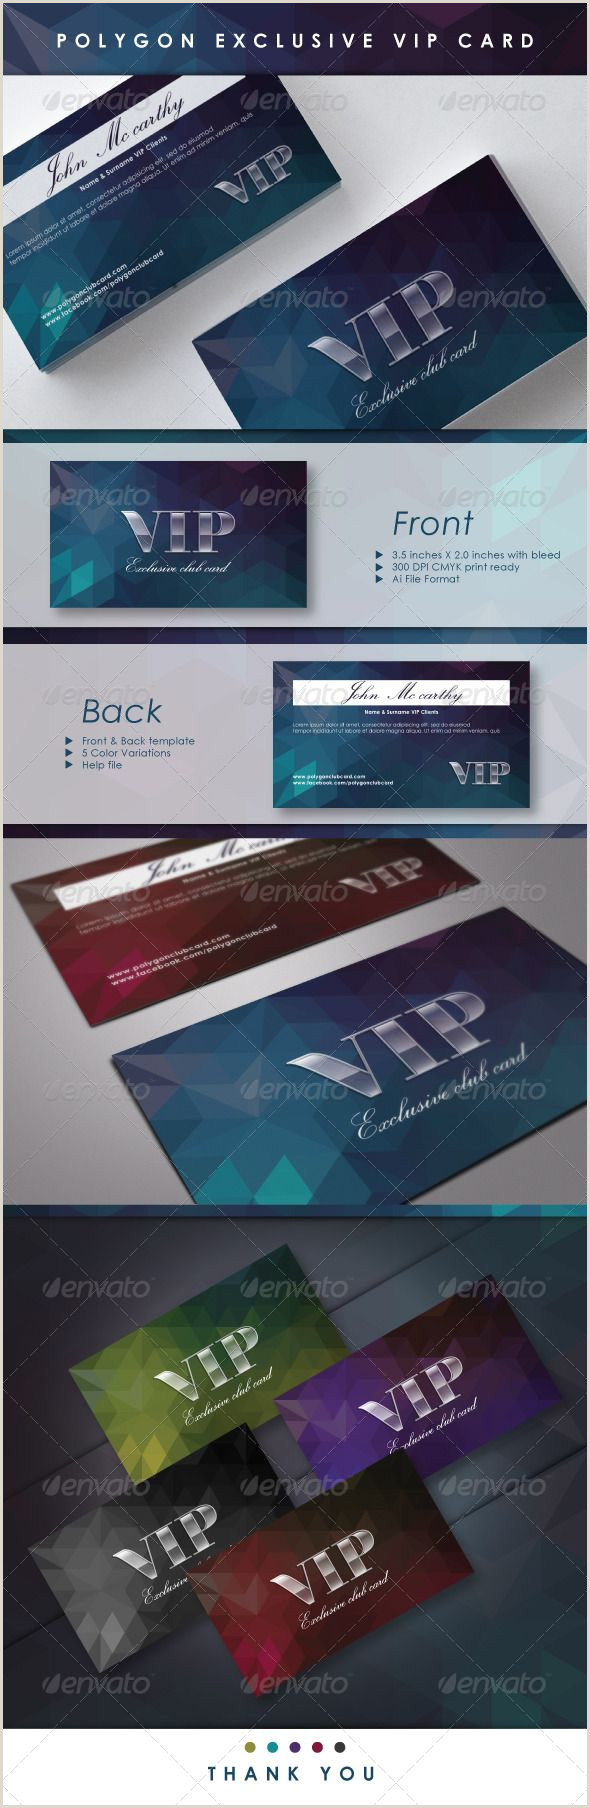 Credit Card Business Card Design Polygon Exclusive Vip Card Graphicriver